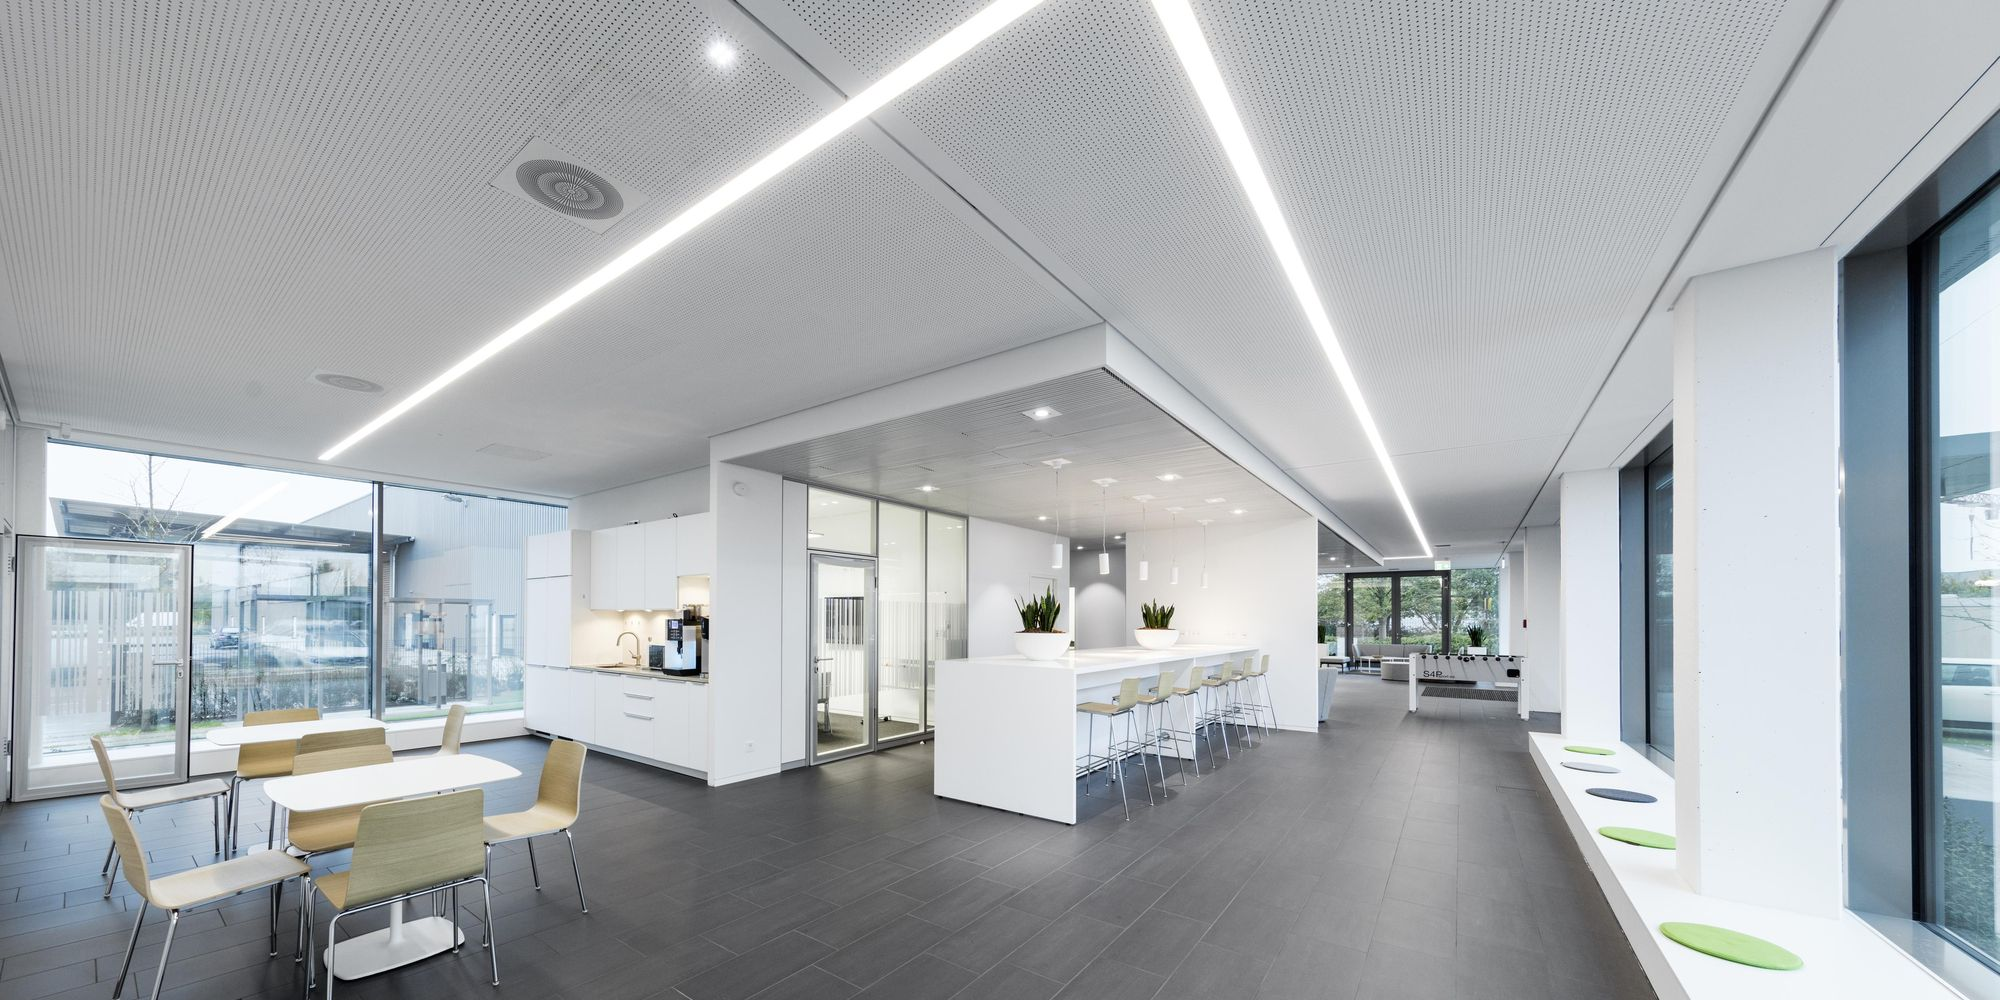 Rehau — interior fit-out with workbench for temporary workplaces